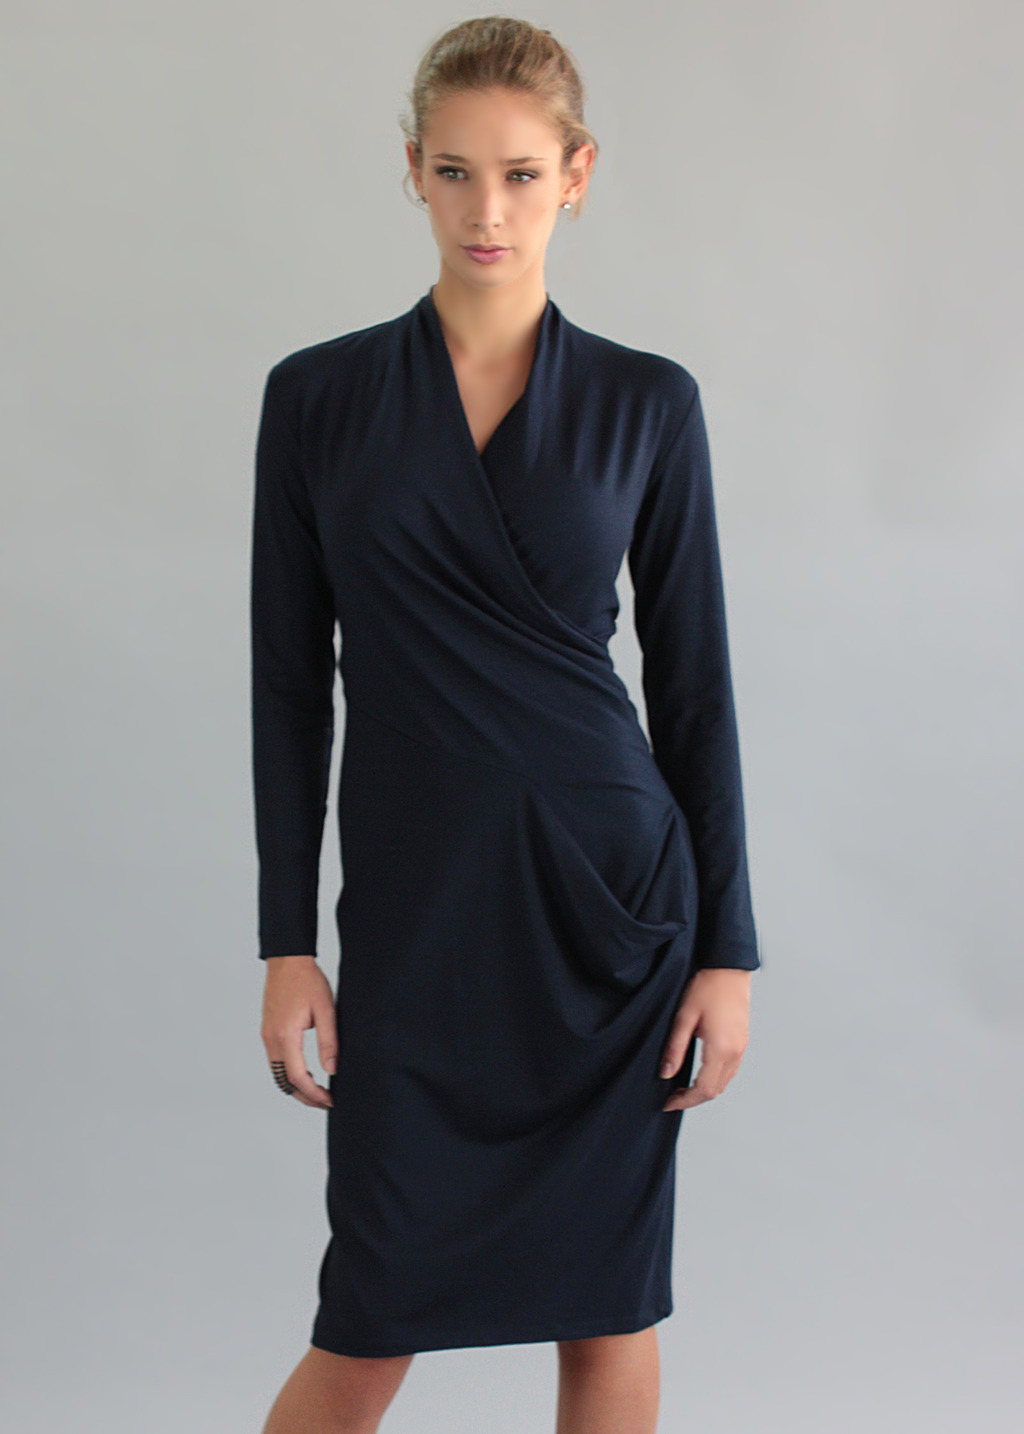 Chelsea Dress - style: faux wrap/wrap; length: below the knee; neckline: v-neck; pattern: plain; predominant colour: navy; occasions: evening, occasion, creative work; fit: body skimming; fibres: viscose/rayon - stretch; hip detail: soft pleats at hip/draping at hip/flared at hip; sleeve length: long sleeve; sleeve style: standard; pattern type: fabric; texture group: jersey - stretchy/drapey; trends: broody brights; season: a/w 2013